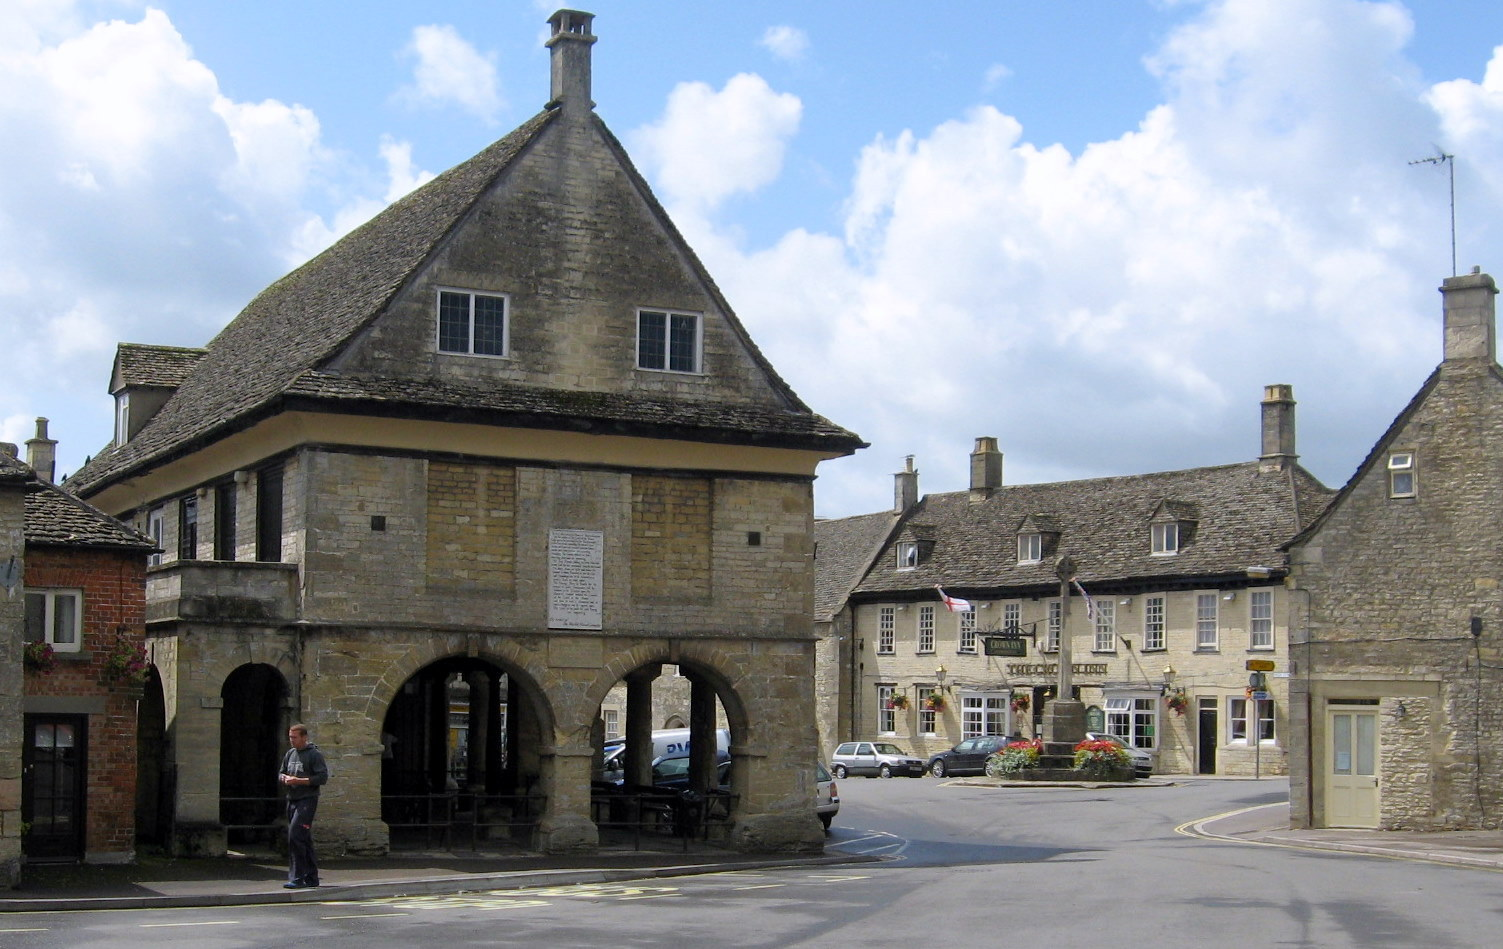 Residents will get final vote on what happens to Minchinhampton